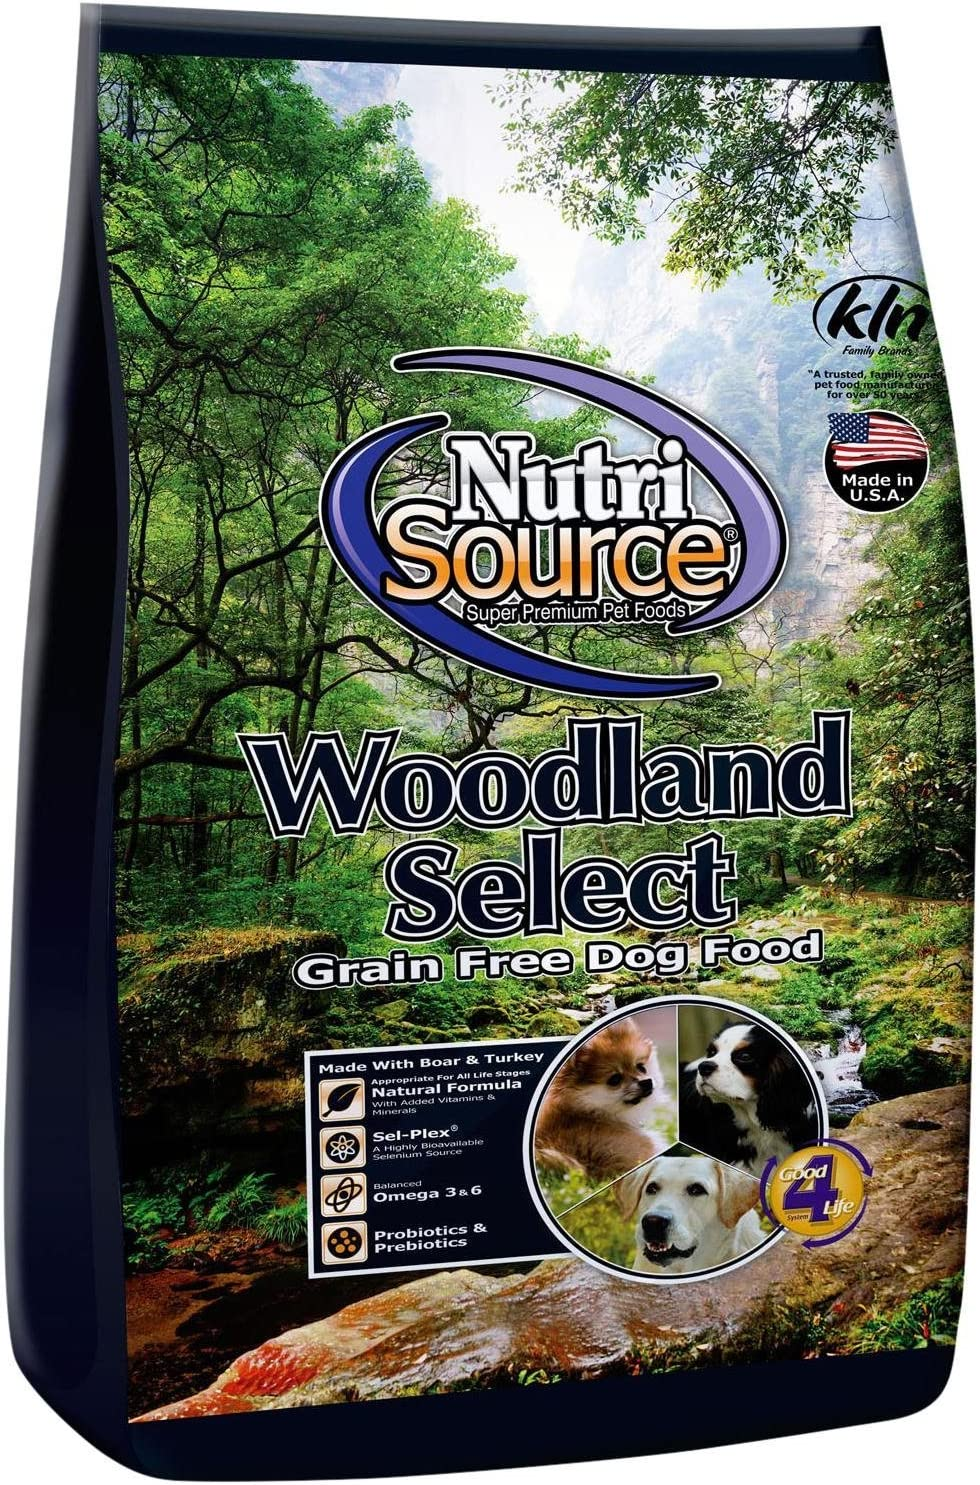 Nutri Source Woodlands Select Grain Free Dog Food - Boar & Turkey - 30 lb